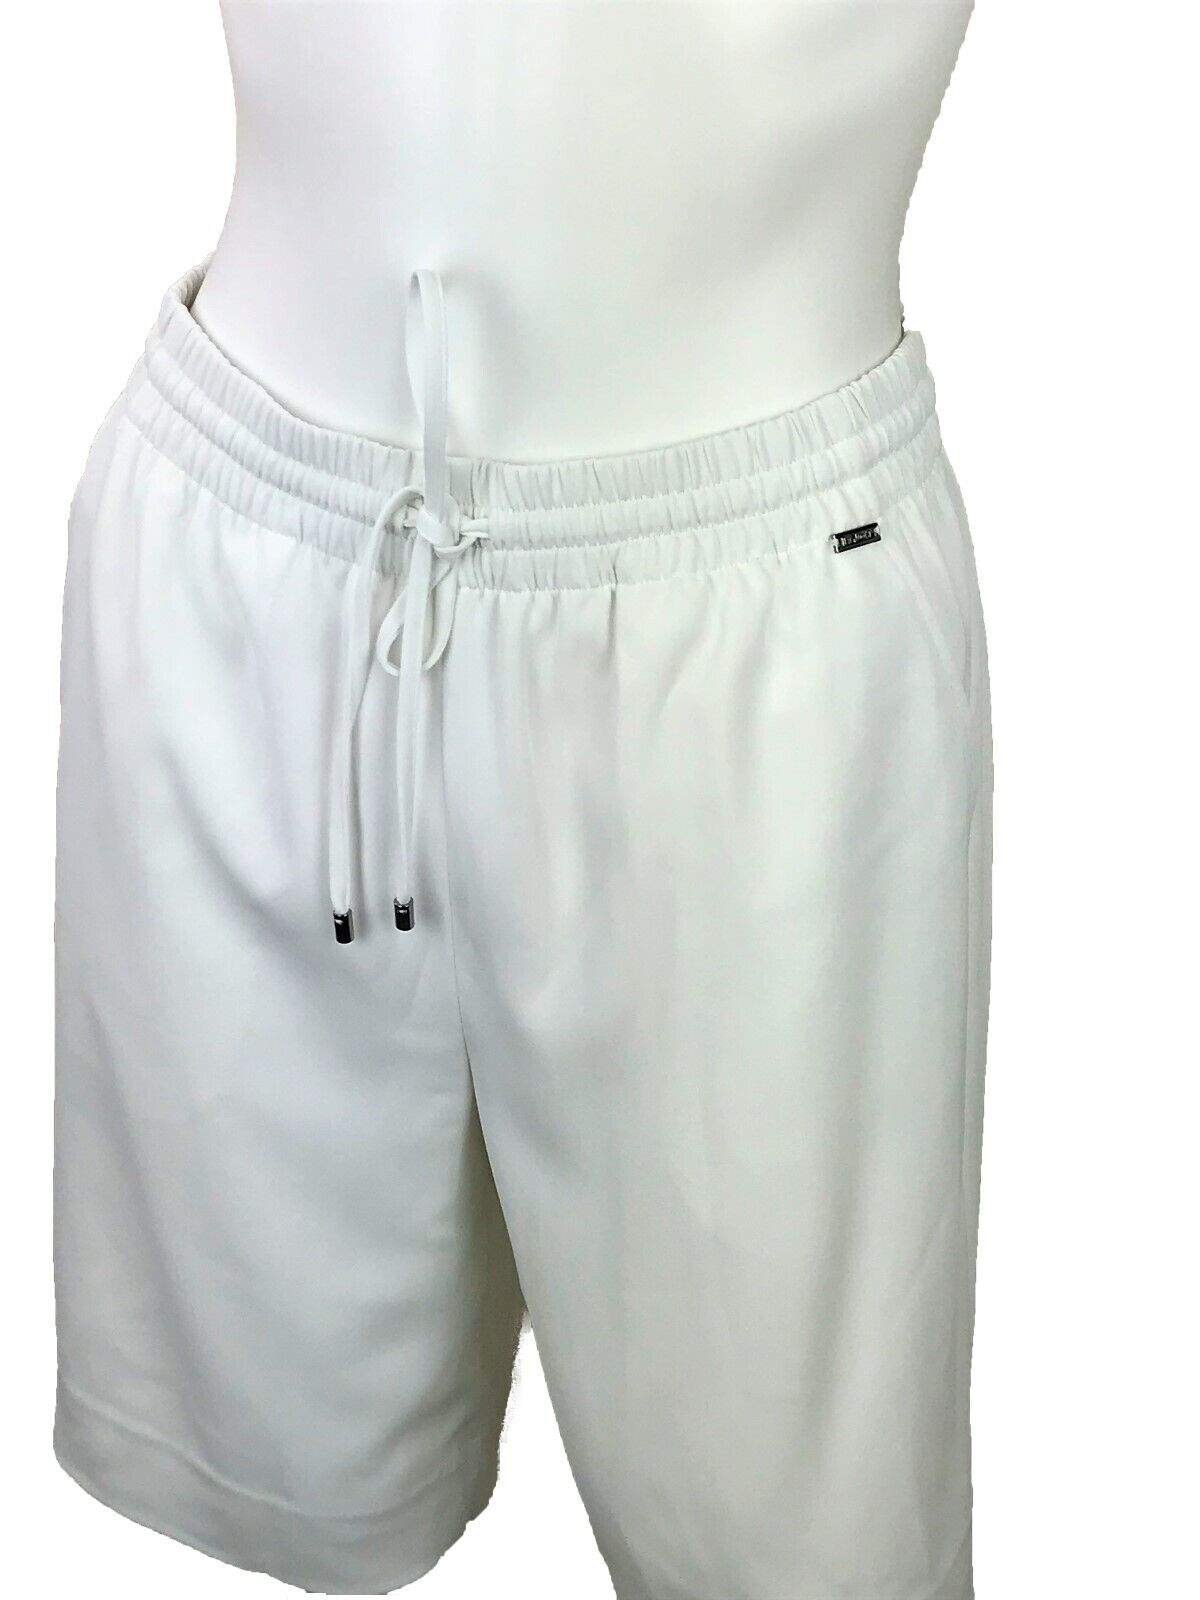 New w Tags  St. John Shorts. White. Size Small. Fully Lined. Drawstring.